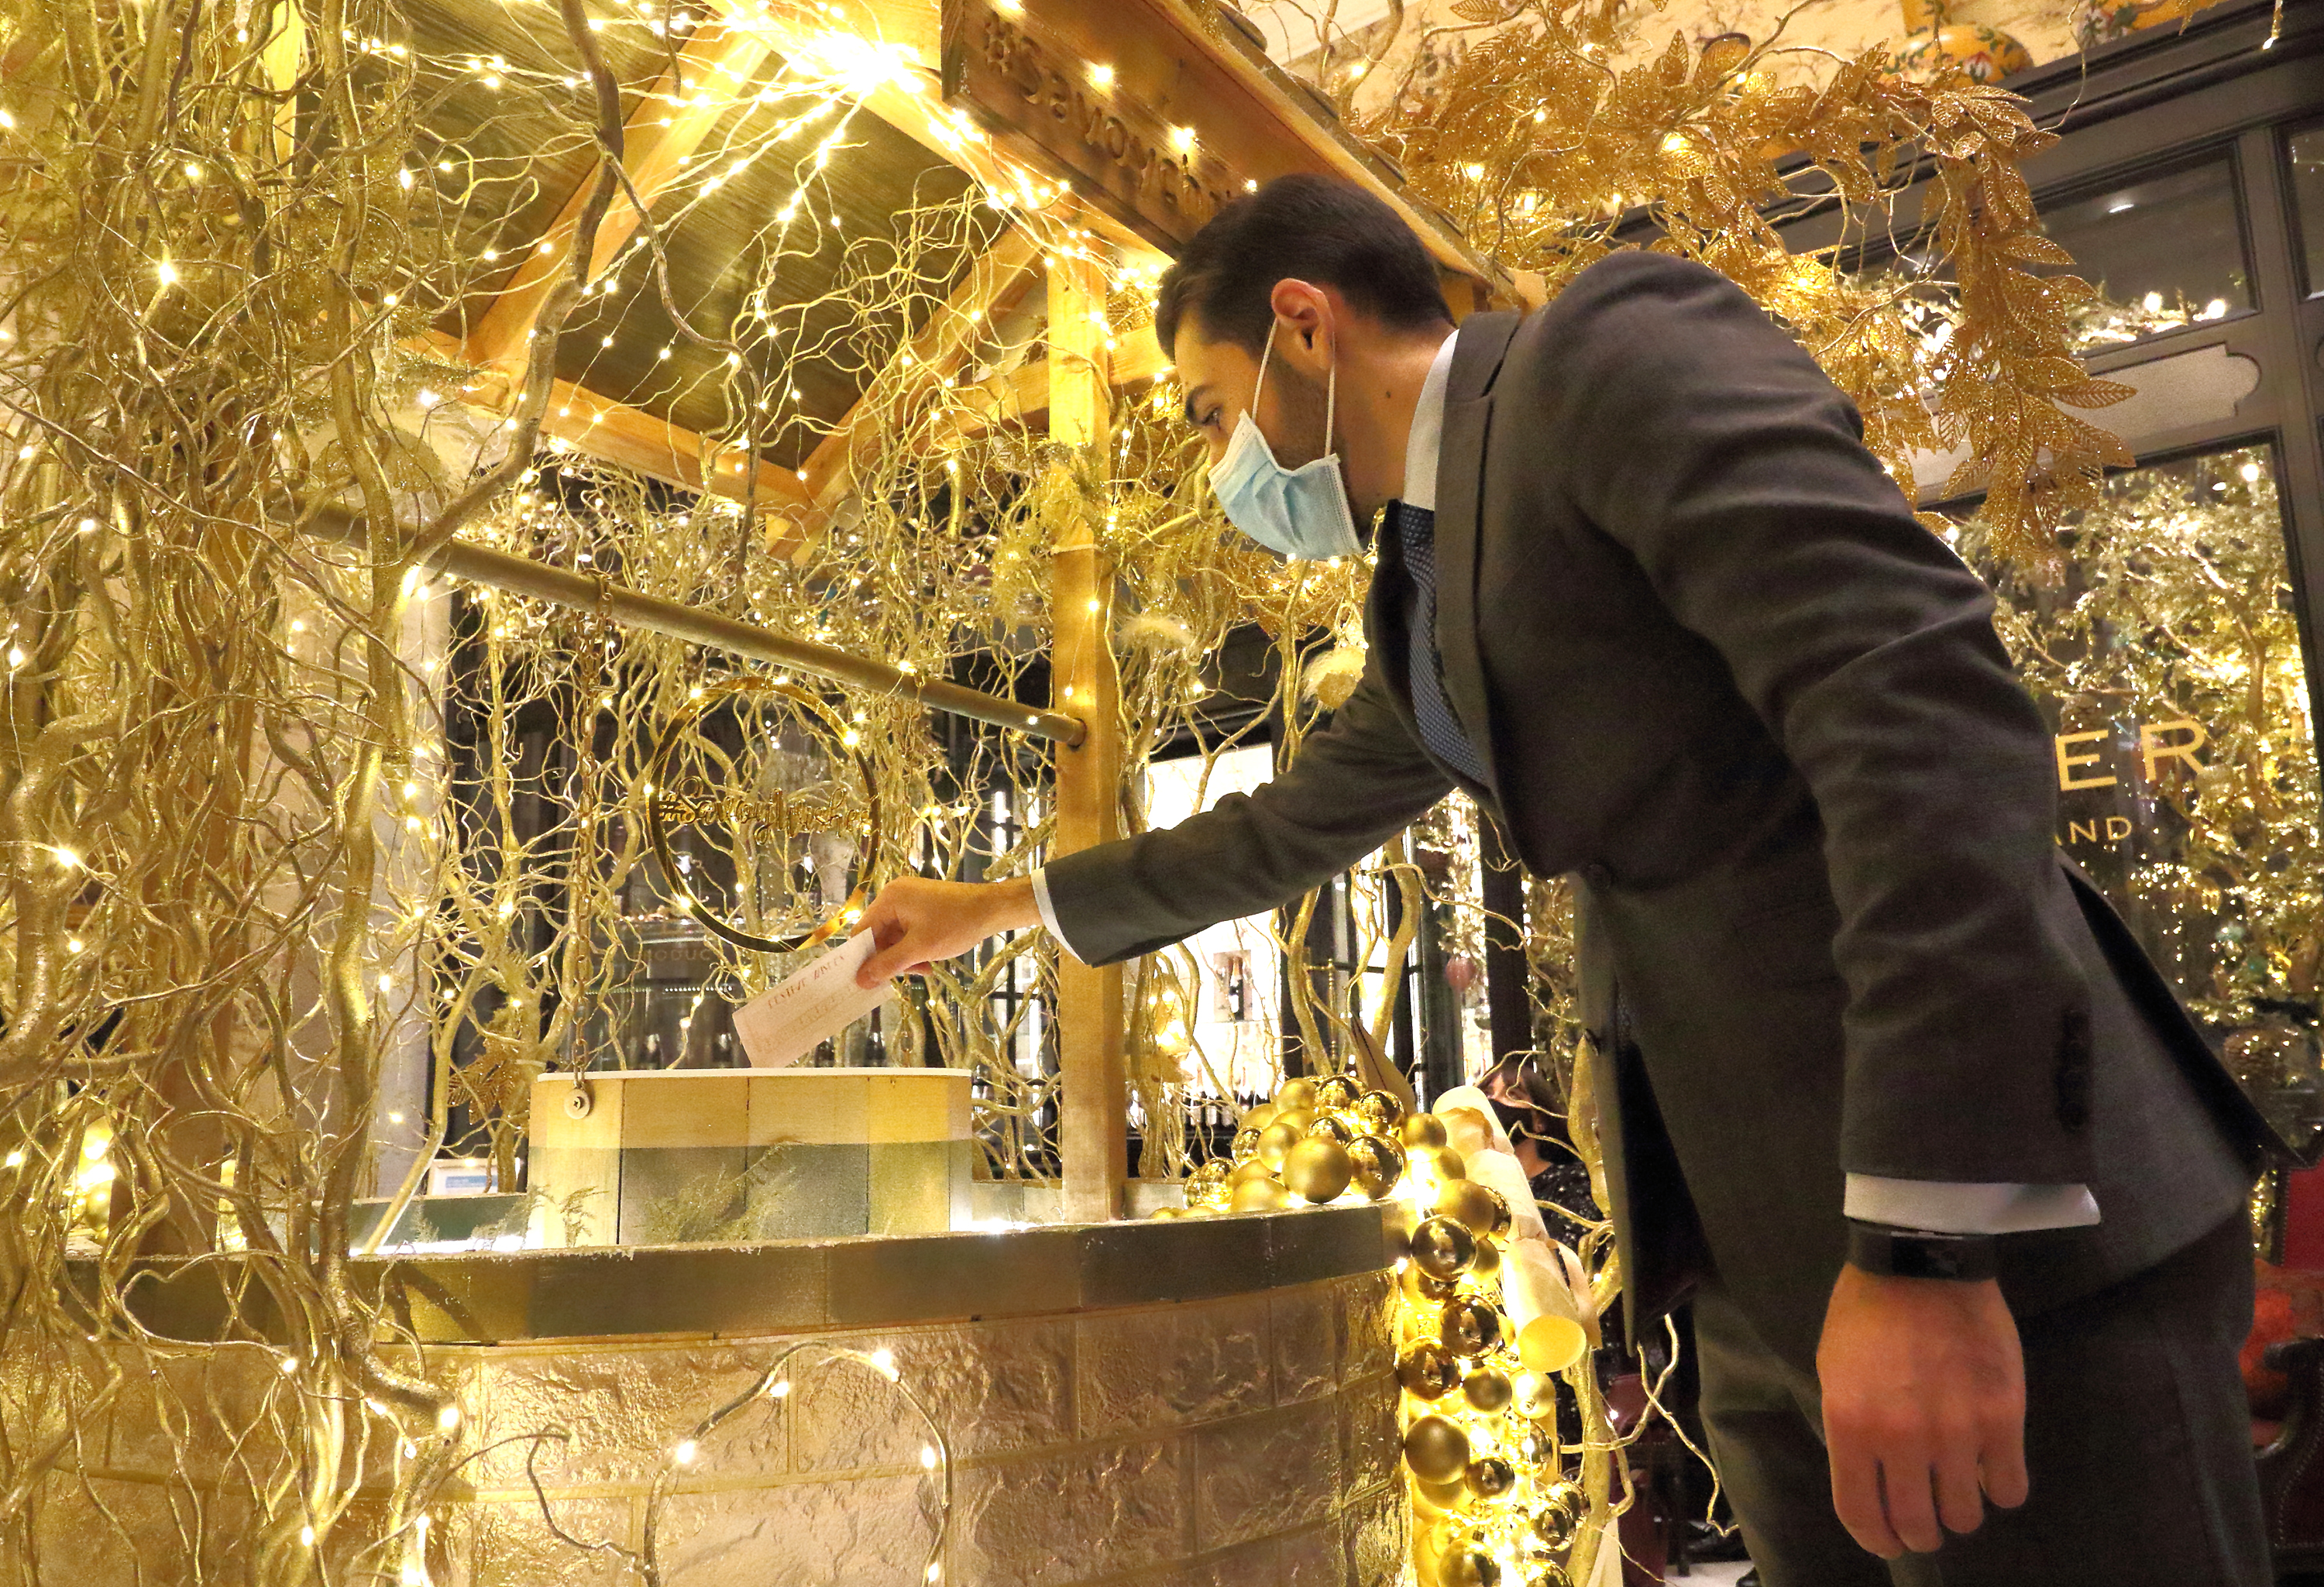 LONDON, UNITED KINGDOM - 2020/12/03: A member of staff wearing a mask posts a wish into the golden wishing well. The Savoy Hotel has reopened and launched a new Christmas charity initiative - Festive Wishes. Launched as the hotel showcases its famous Christmas decorations, The Savoy will grant wishes rewarding kindness and in doing so support two key charities, namely Hospitality Action and The Connection at St Martin in the Fields. (Photo by Keith Mayhew/SOPA Images/LightRocket via Getty Images)